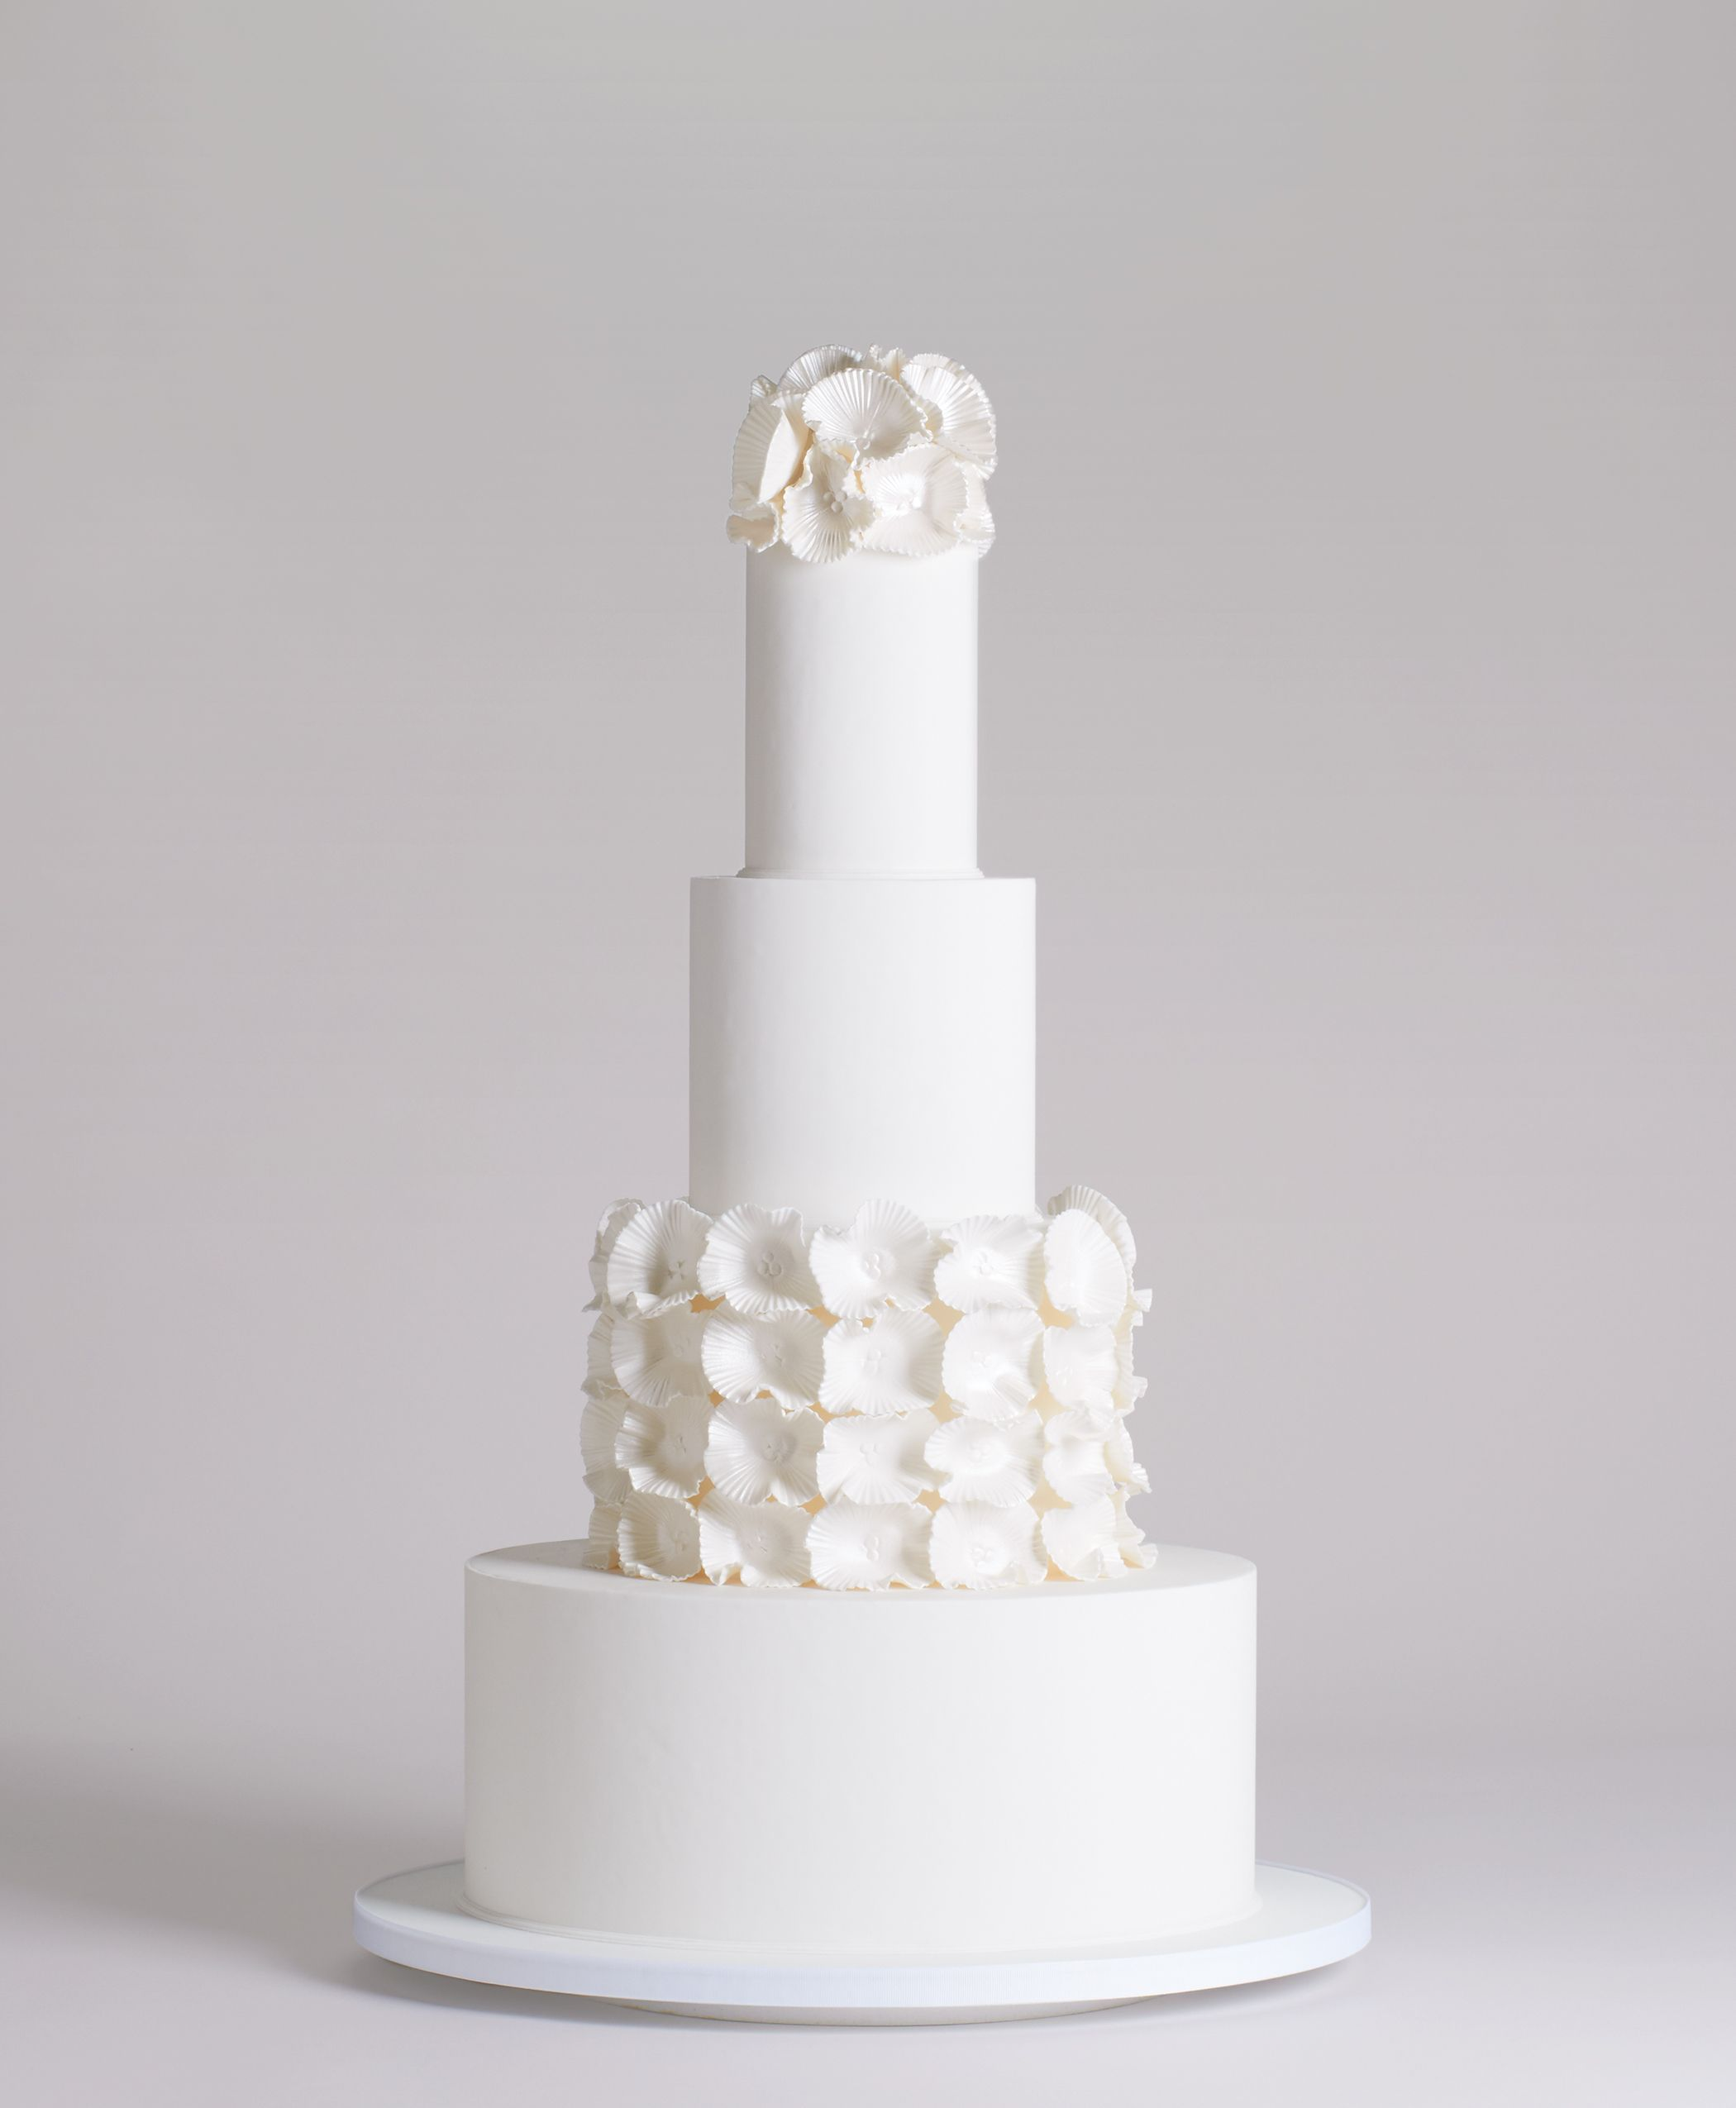 4 Tier Abstract Flower White Cake | BL | Wedding Inspiration ...